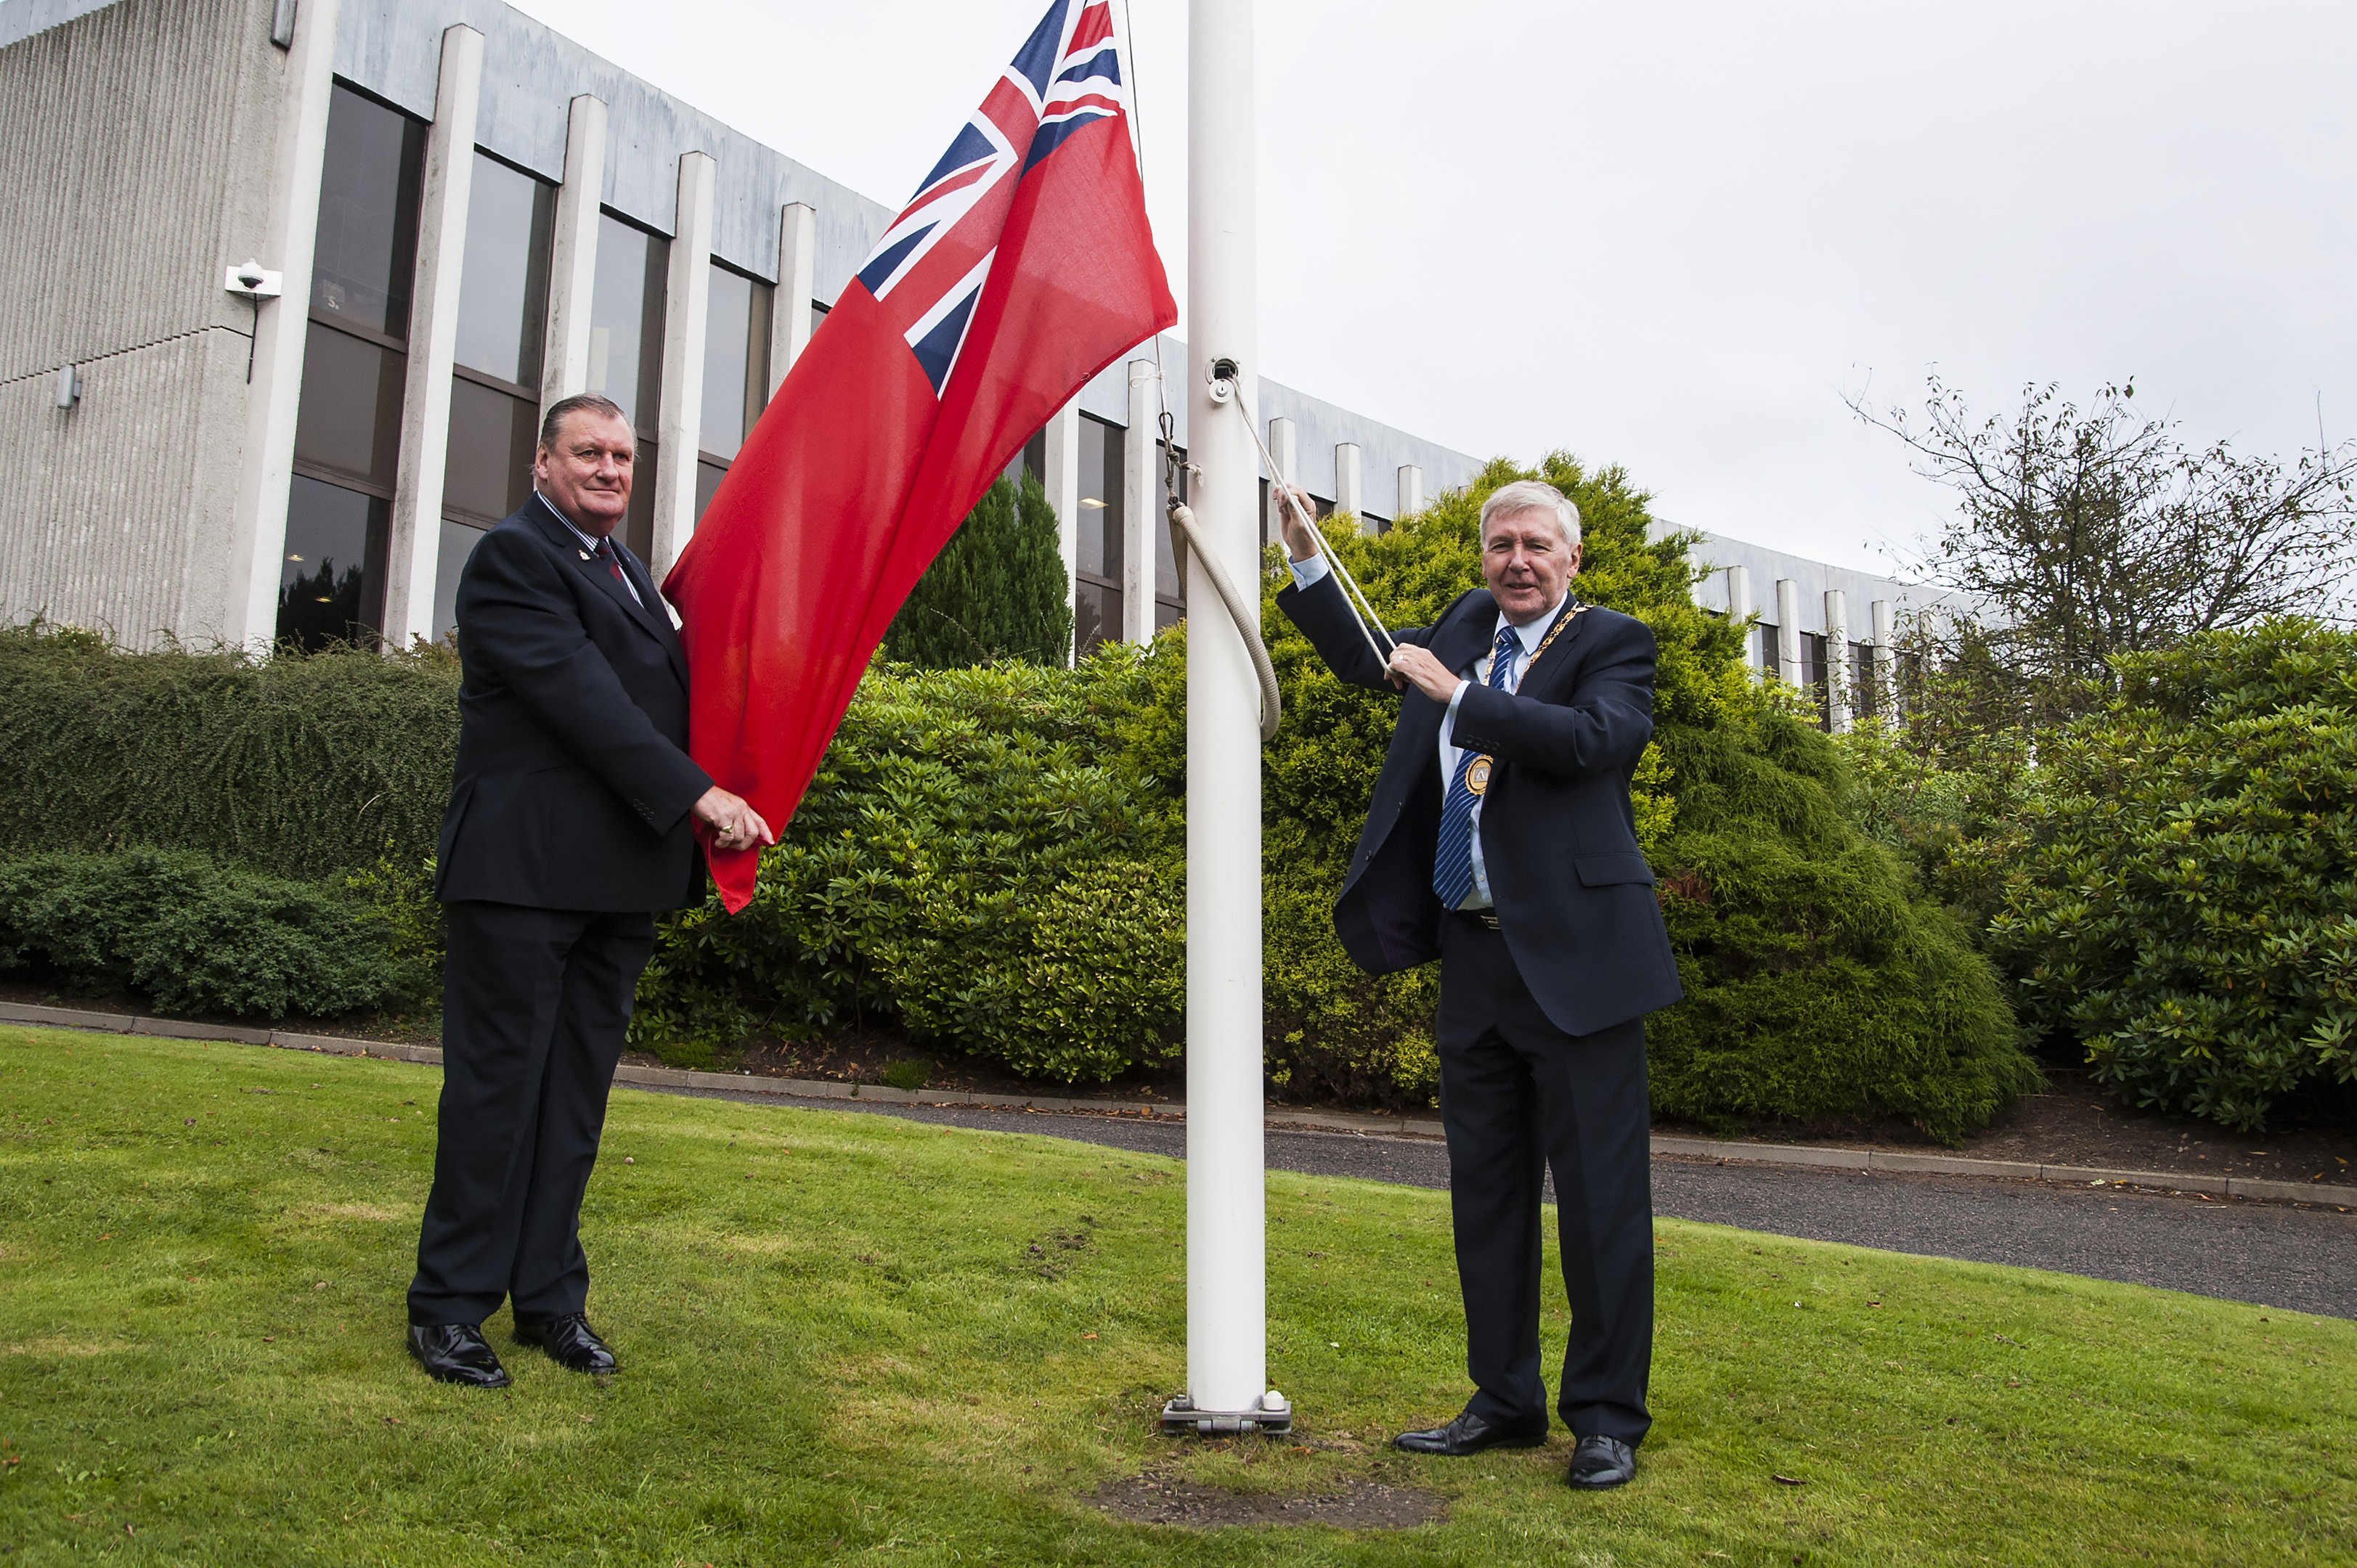 Councillors Allan Hendry and Hamish Vernal raise the red ensign of the Merchant Navy